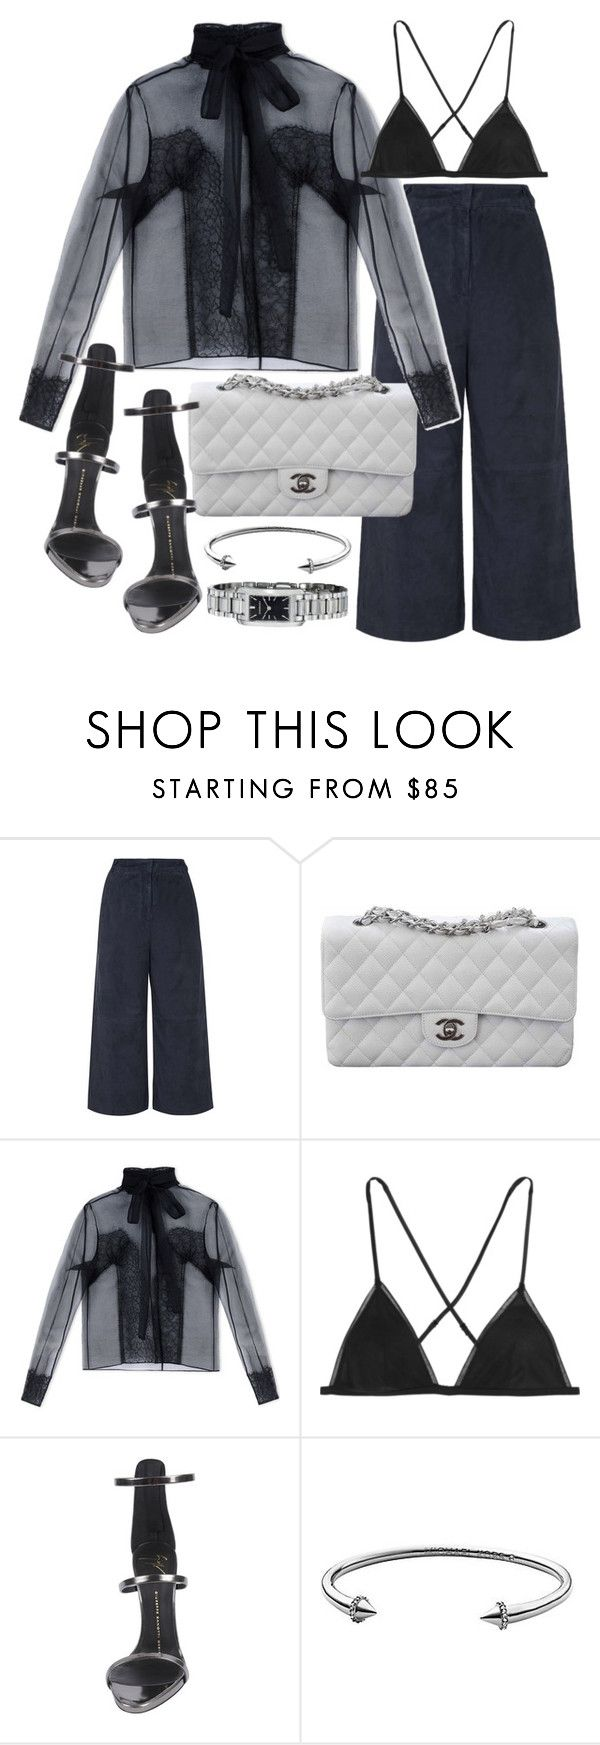 """""""Untitled #19222"""" by florencia95 ❤ liked on Polyvore featuring Topshop, Chanel, Rochas, Kiki de Montparnasse, Giuseppe Zanotti, Michael Kors and Burberry"""